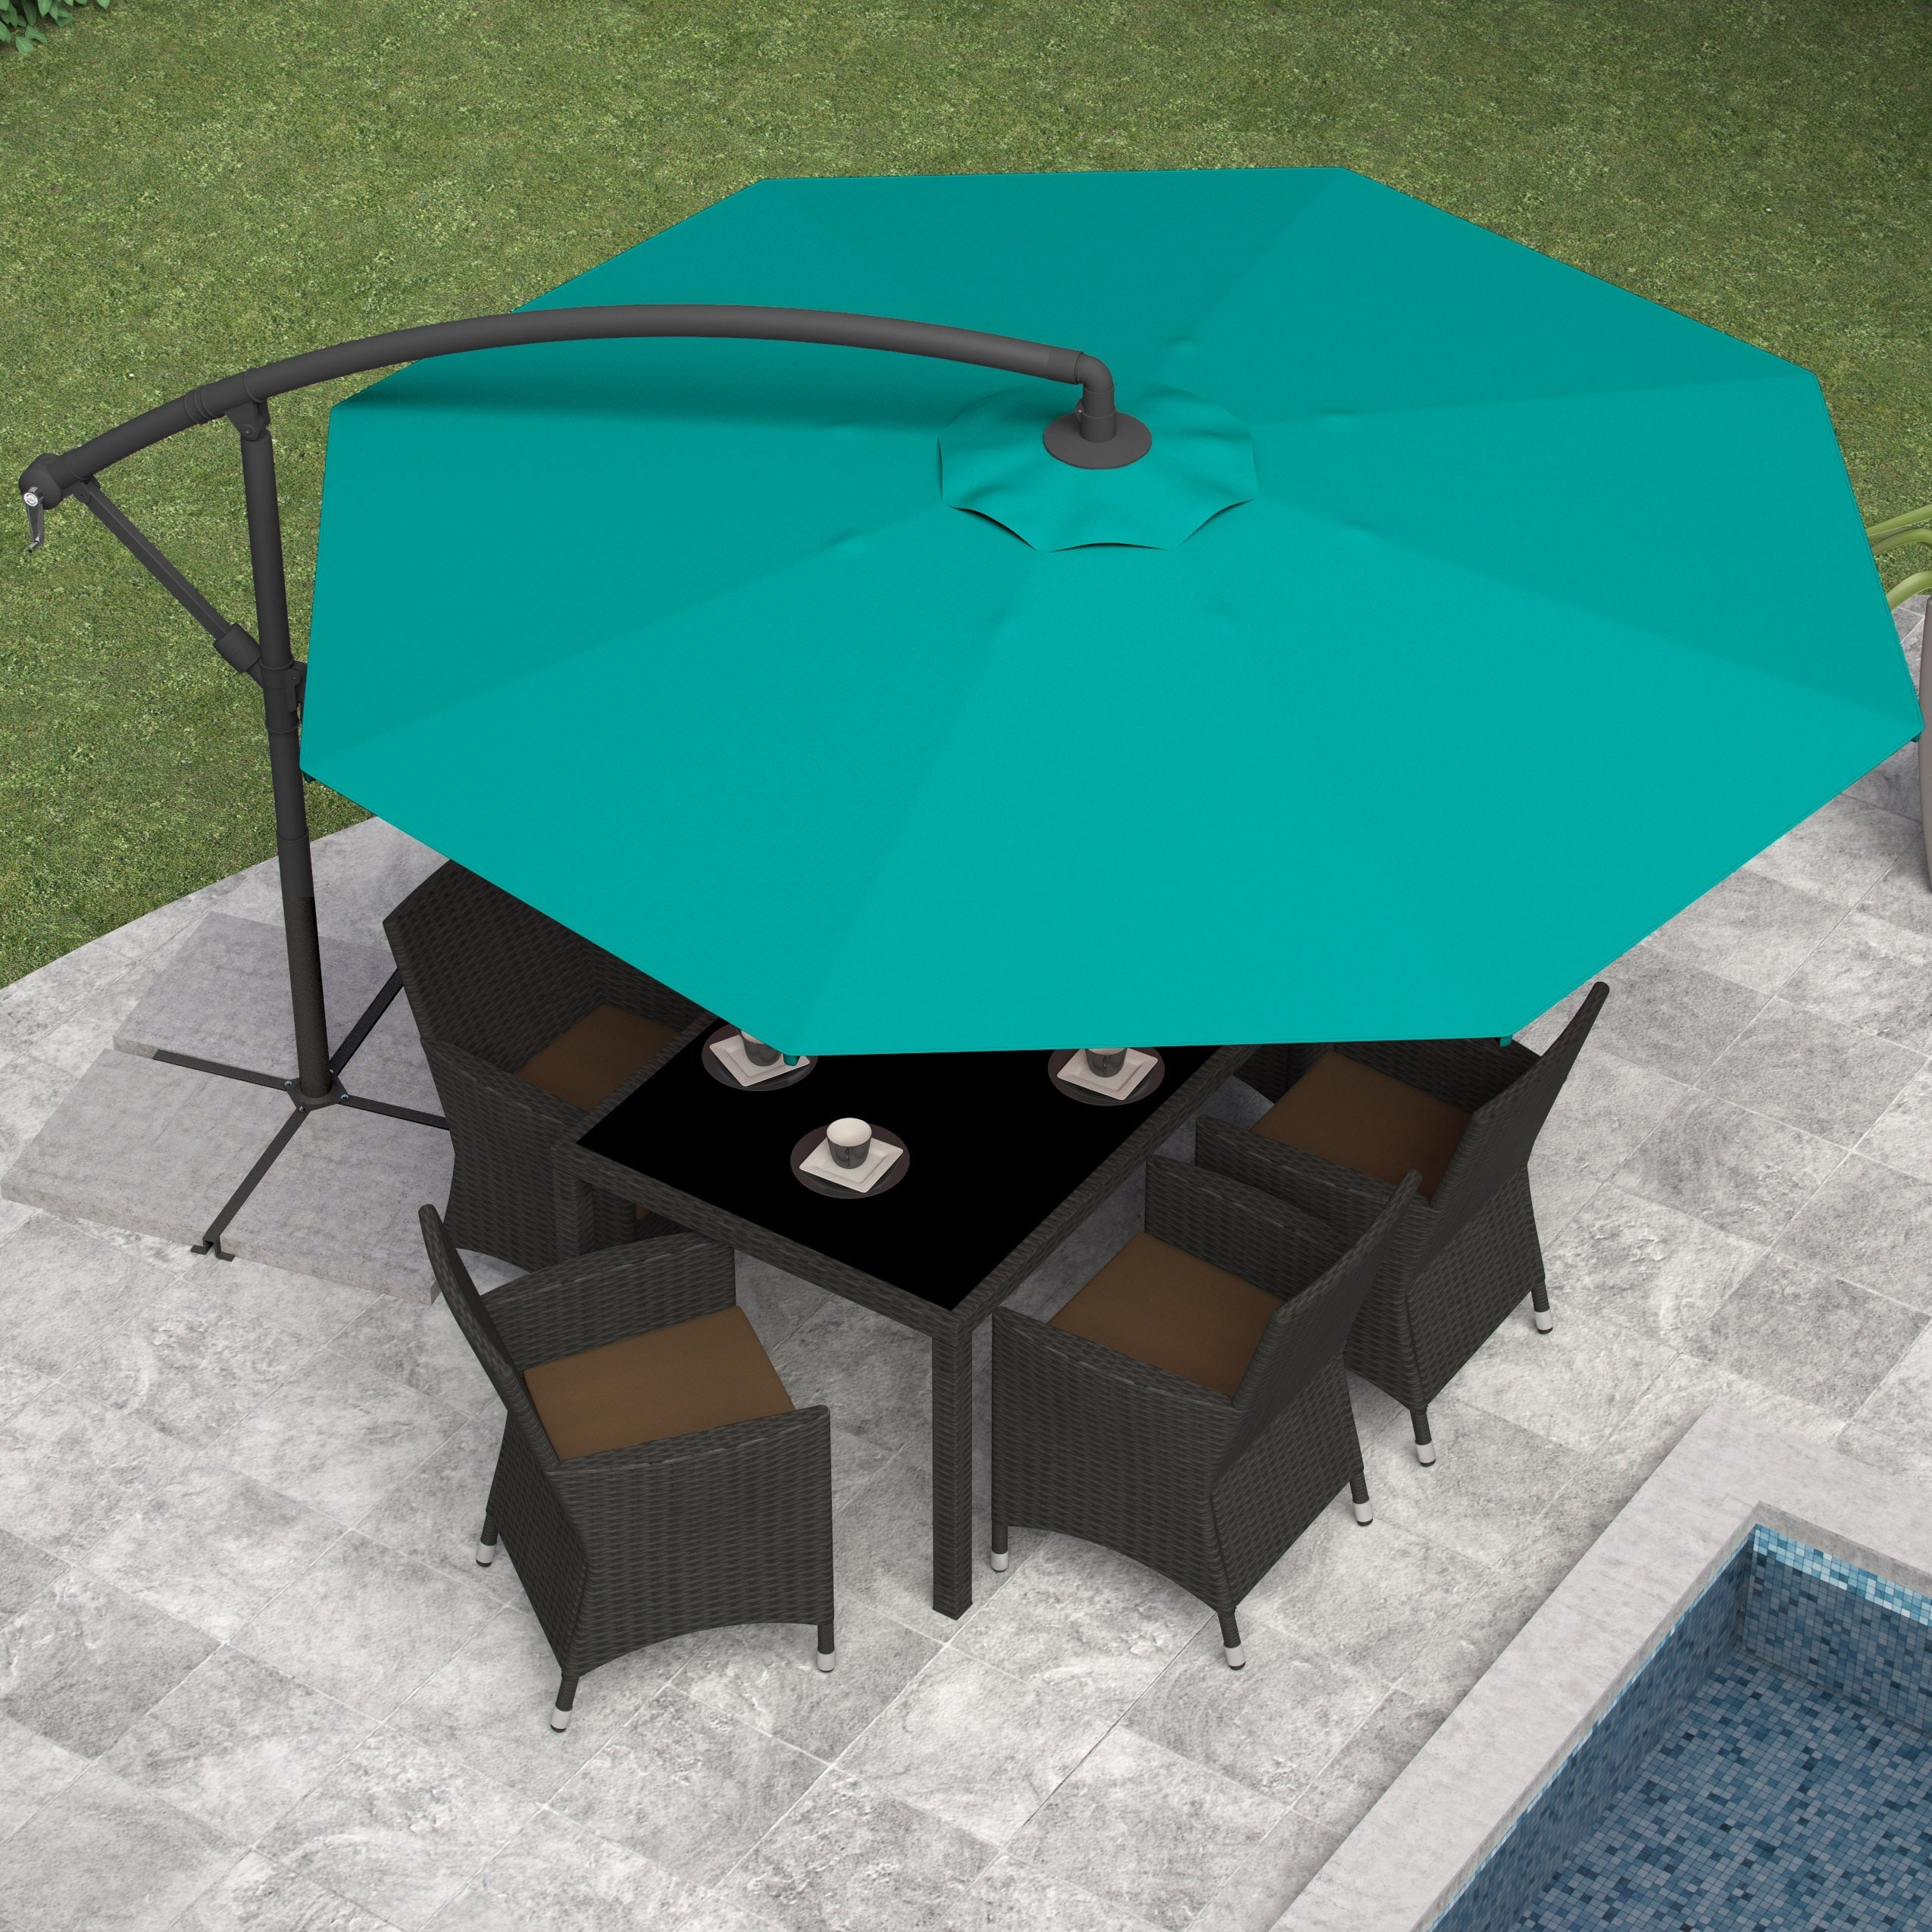 backyard chairs cantilever wooden table for umbrellas arm furniture round front umbrella and with cozy ideas offset outdoor interesting patio yard your